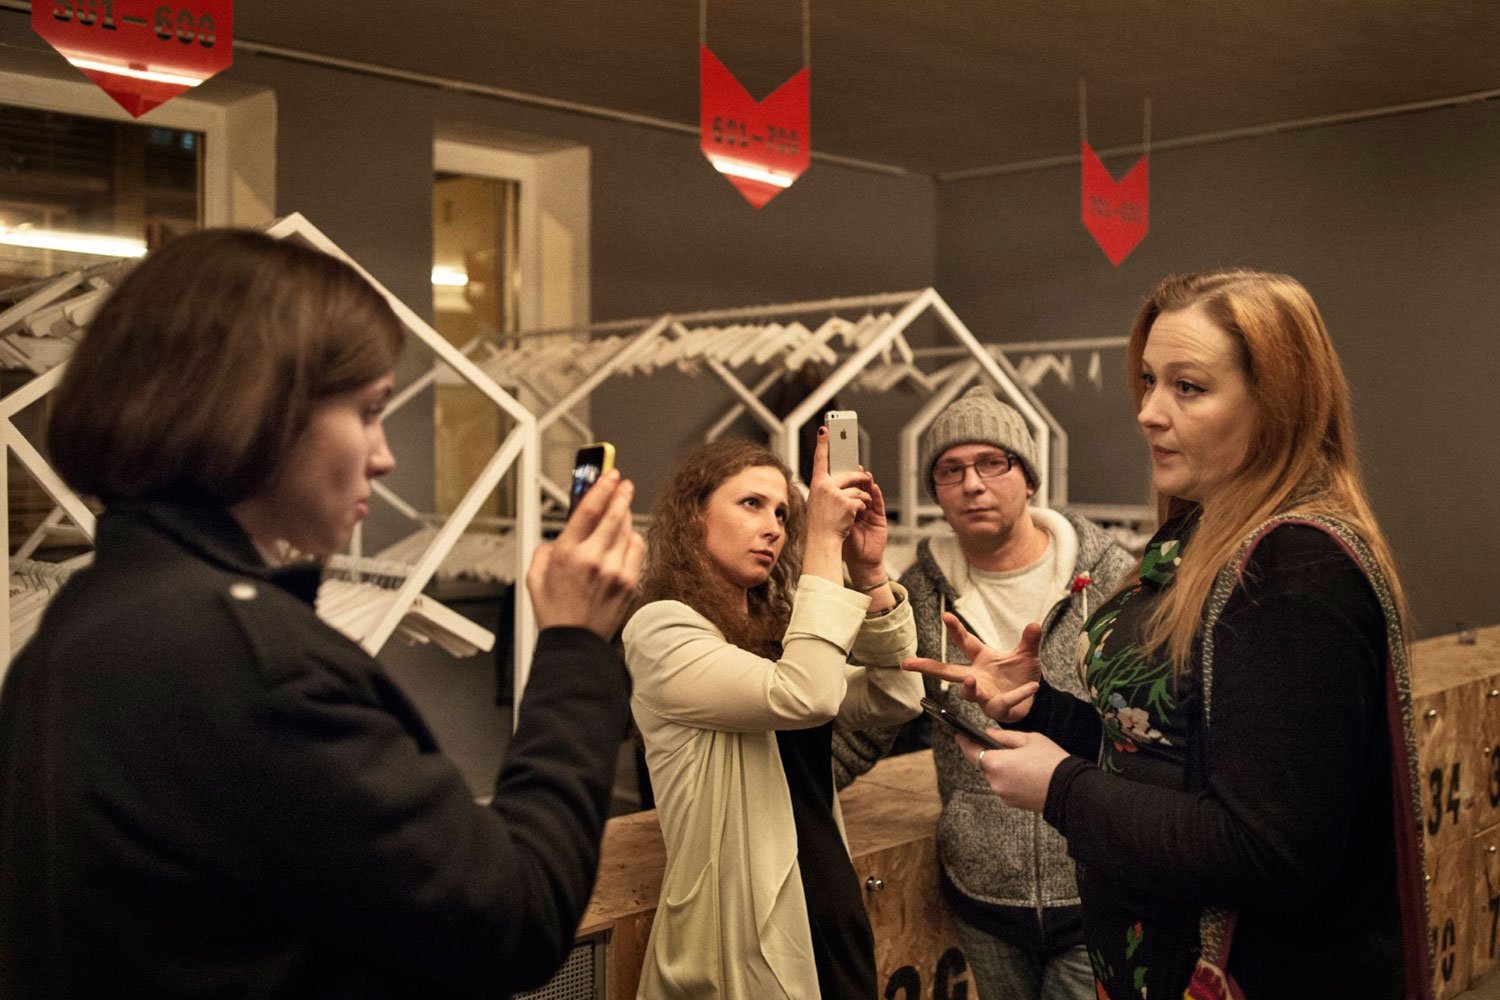 Maria Alyokhina and Nadezhda Tolokonnikova conduct an interview at the Gogol Center, asking people's opinion about the new prison reform organization they are planning to establish.